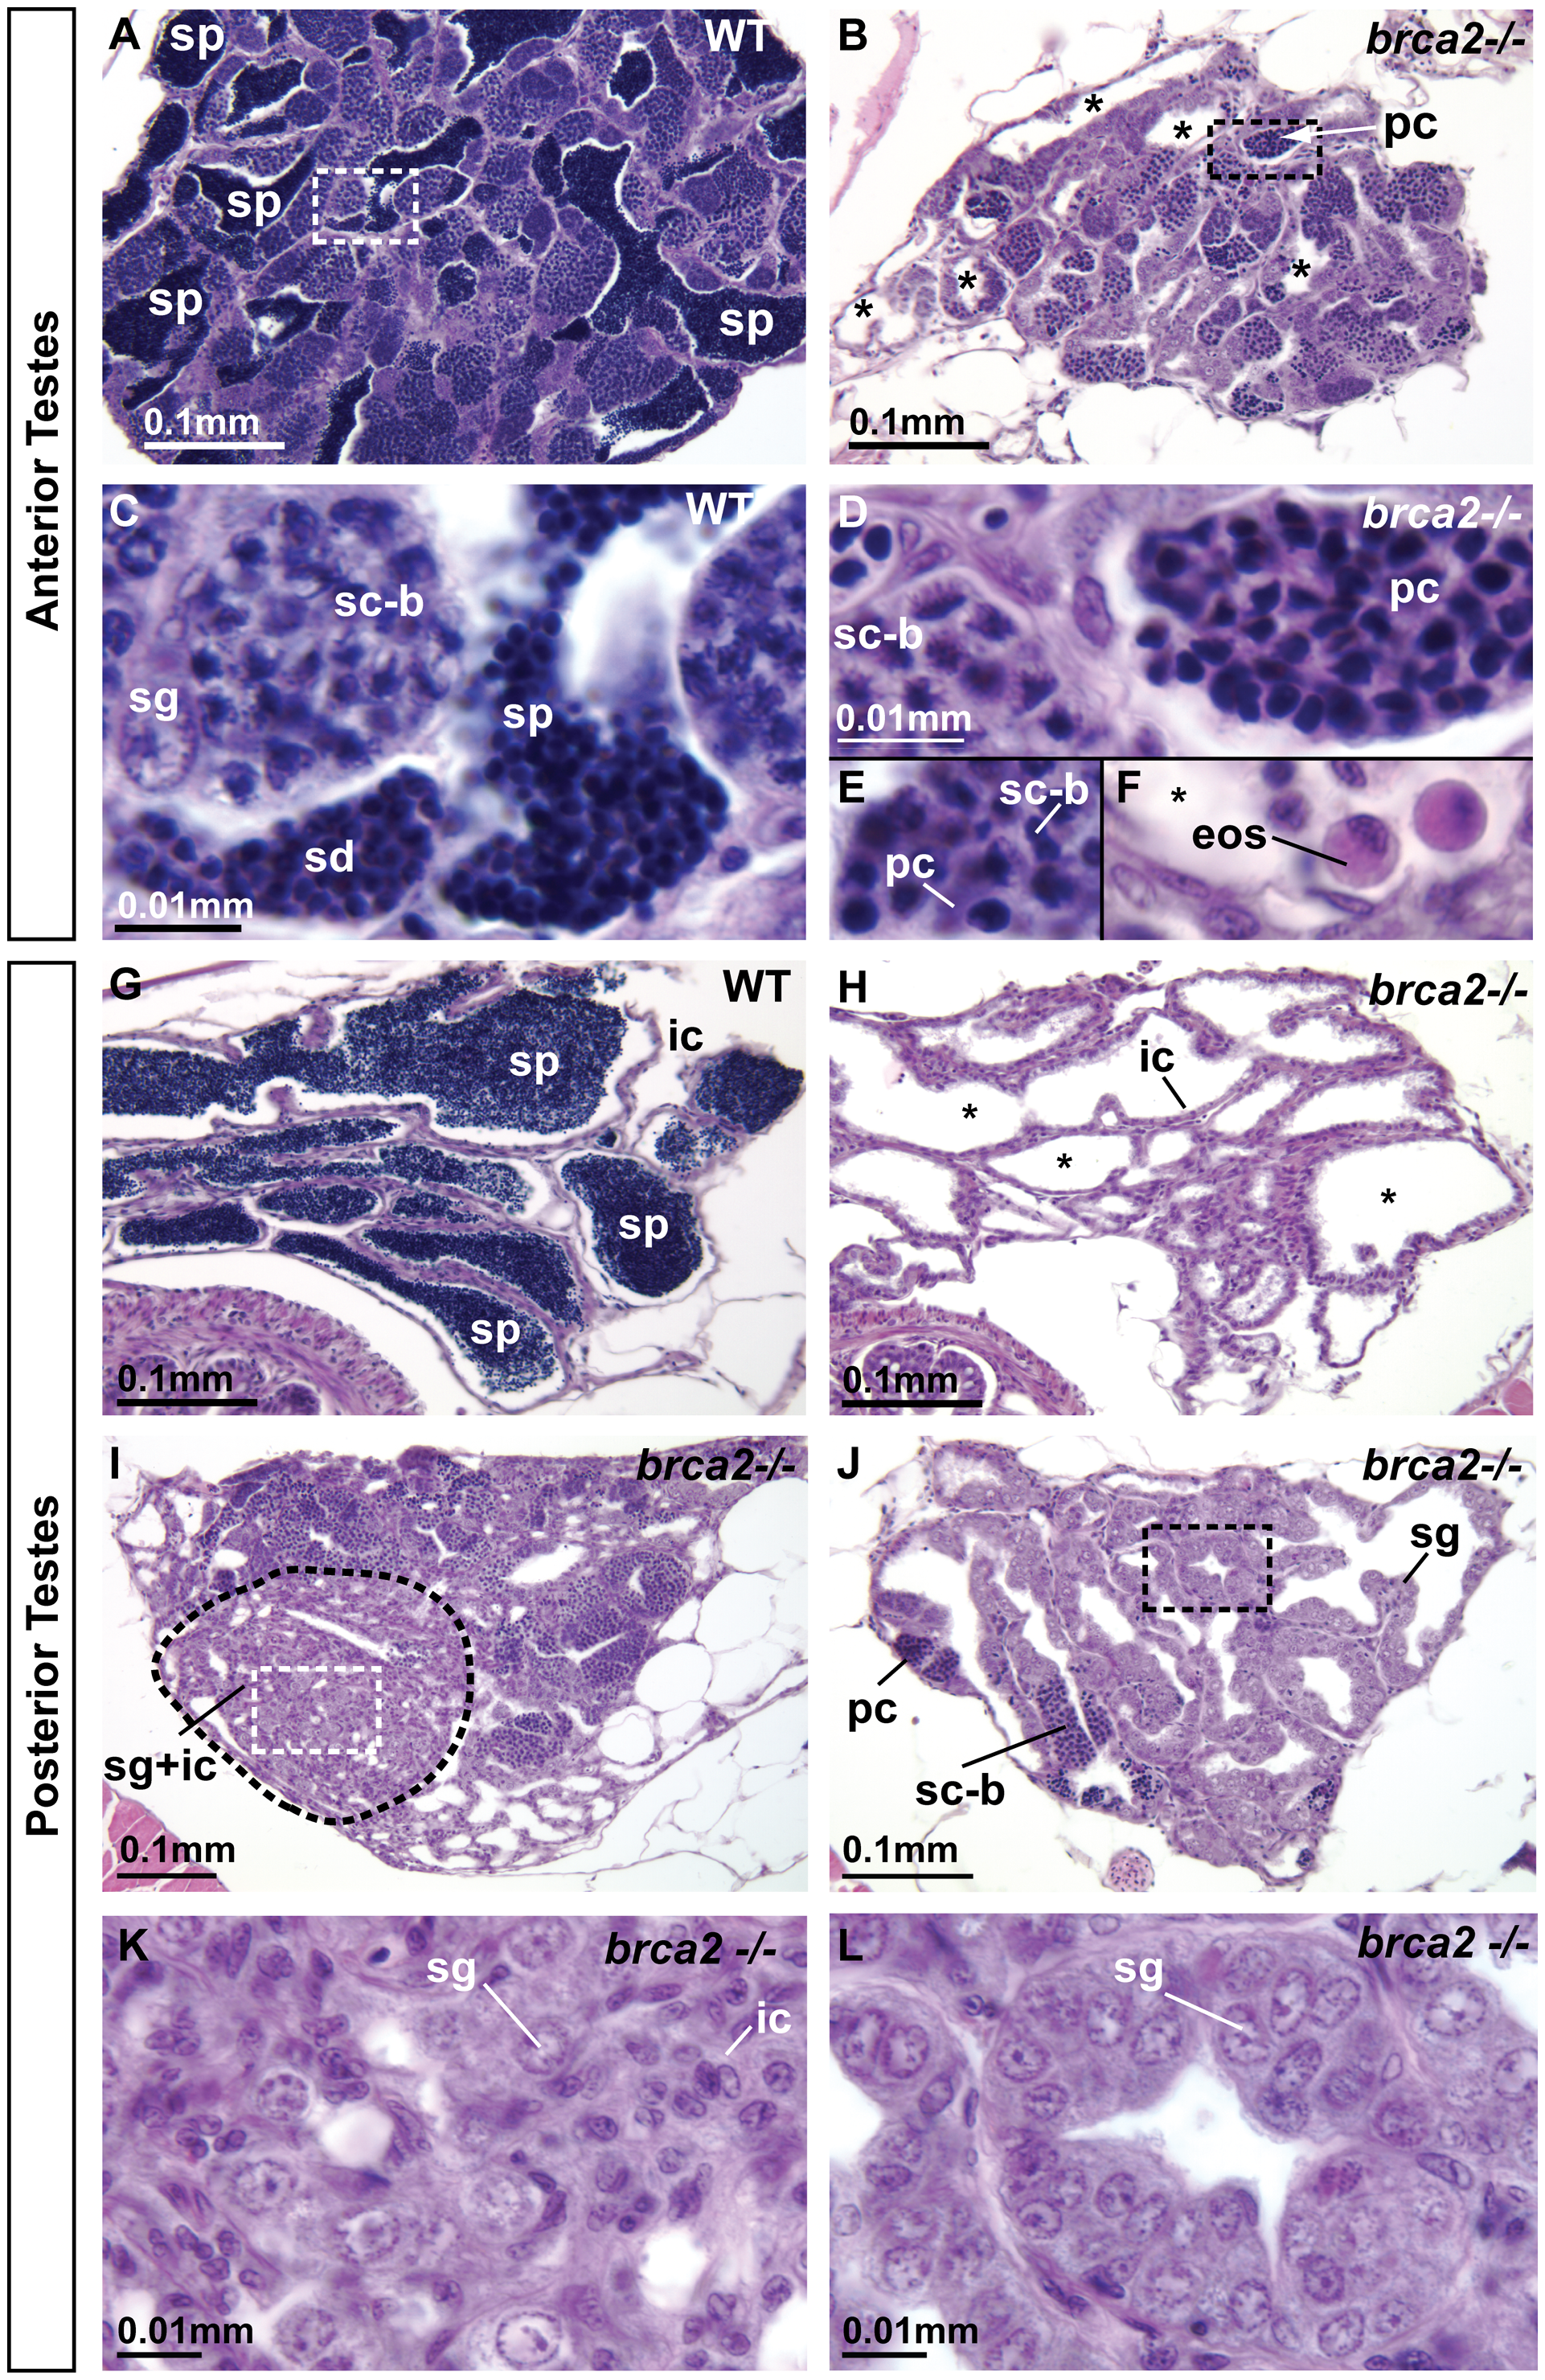 Adult <i>brca2</i> mutant testes showed meiotic arrest and lack of spermatids and sperm and developed neoplasias.